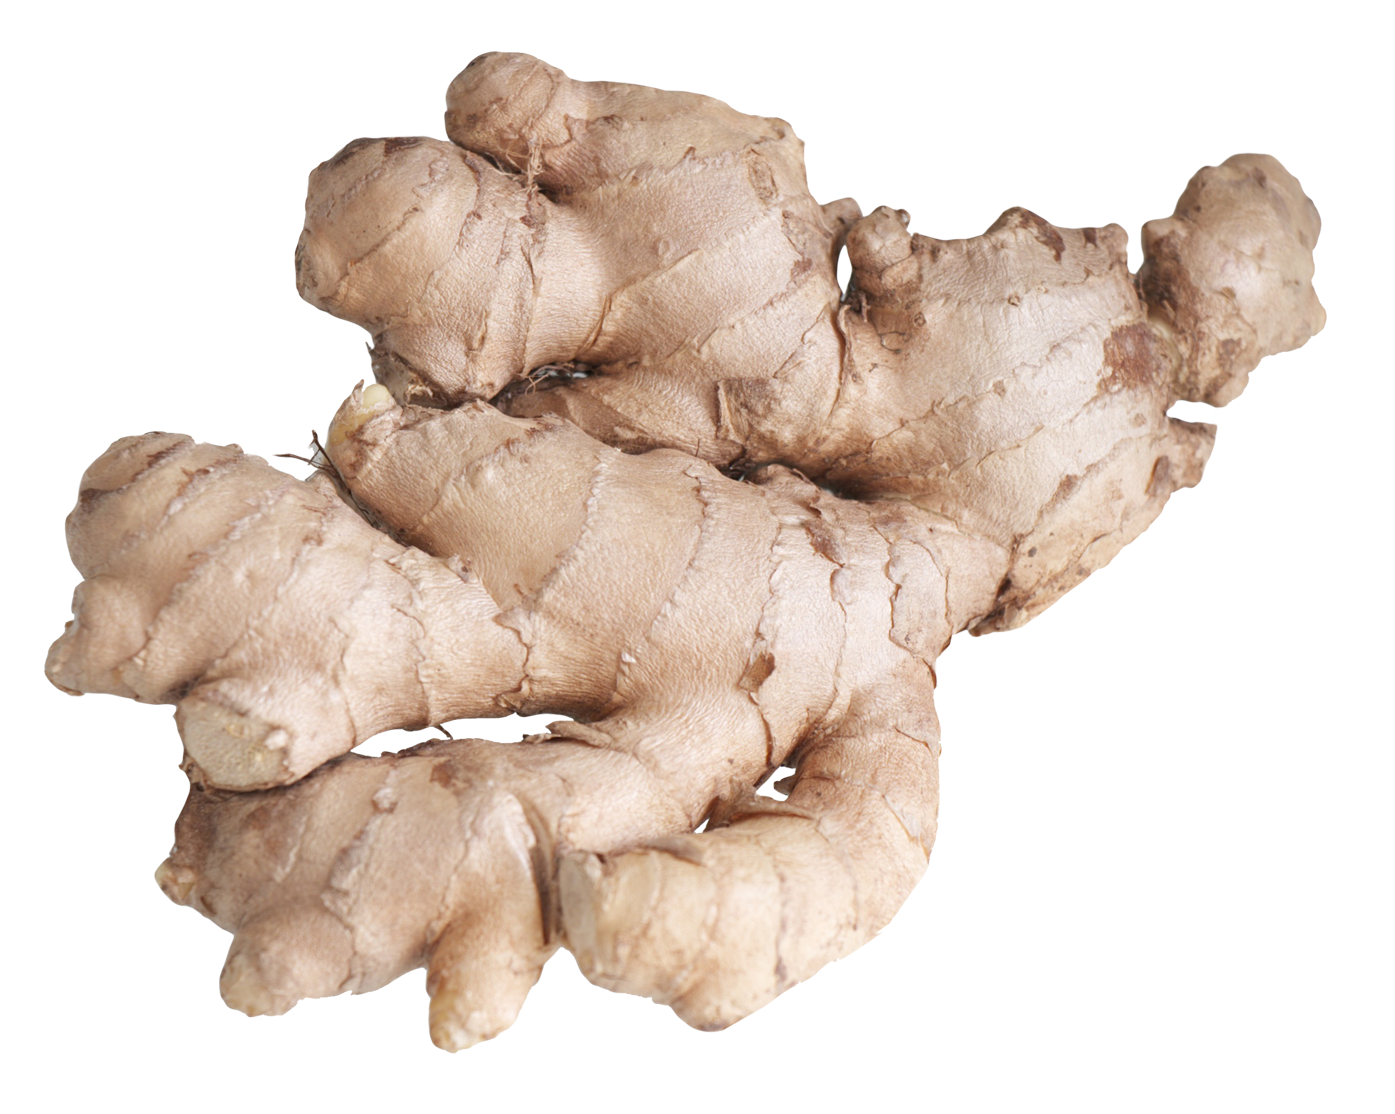 ginger png image collection for download #27475